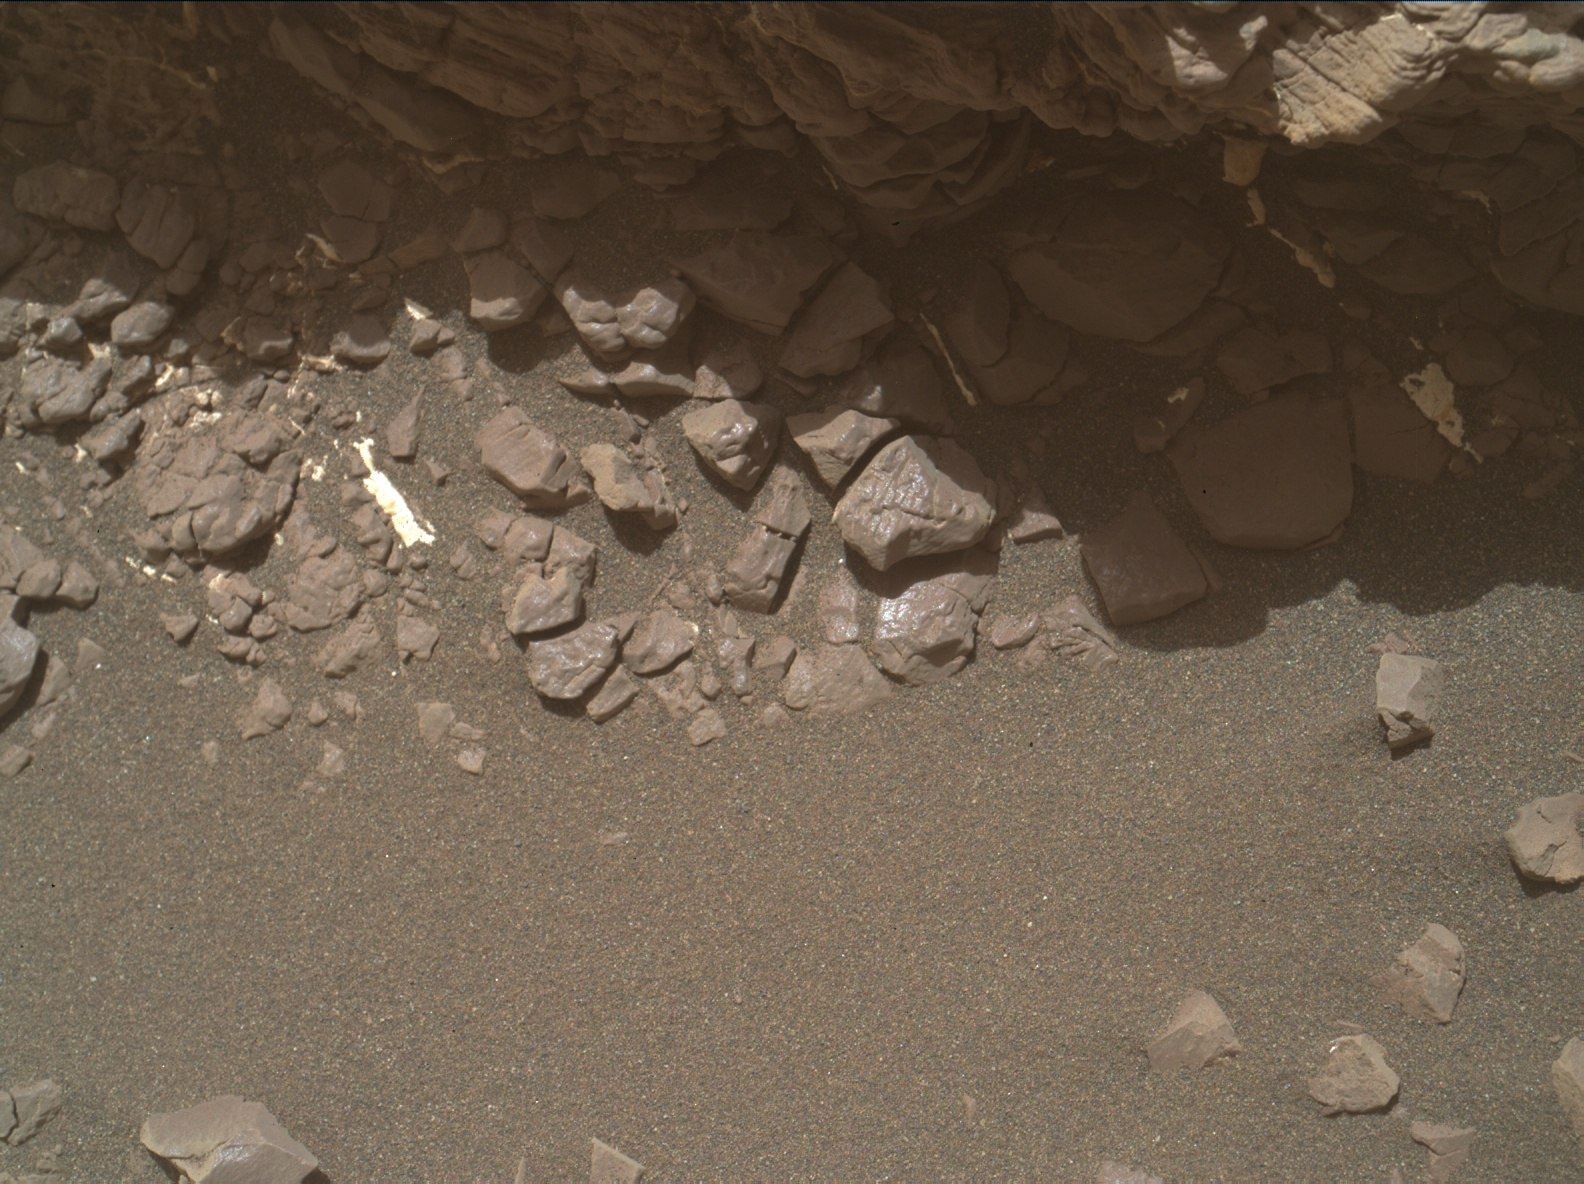 Nasa's Mars rover Curiosity acquired this image using its Mars Hand Lens Imager (MAHLI) on Sol 2452